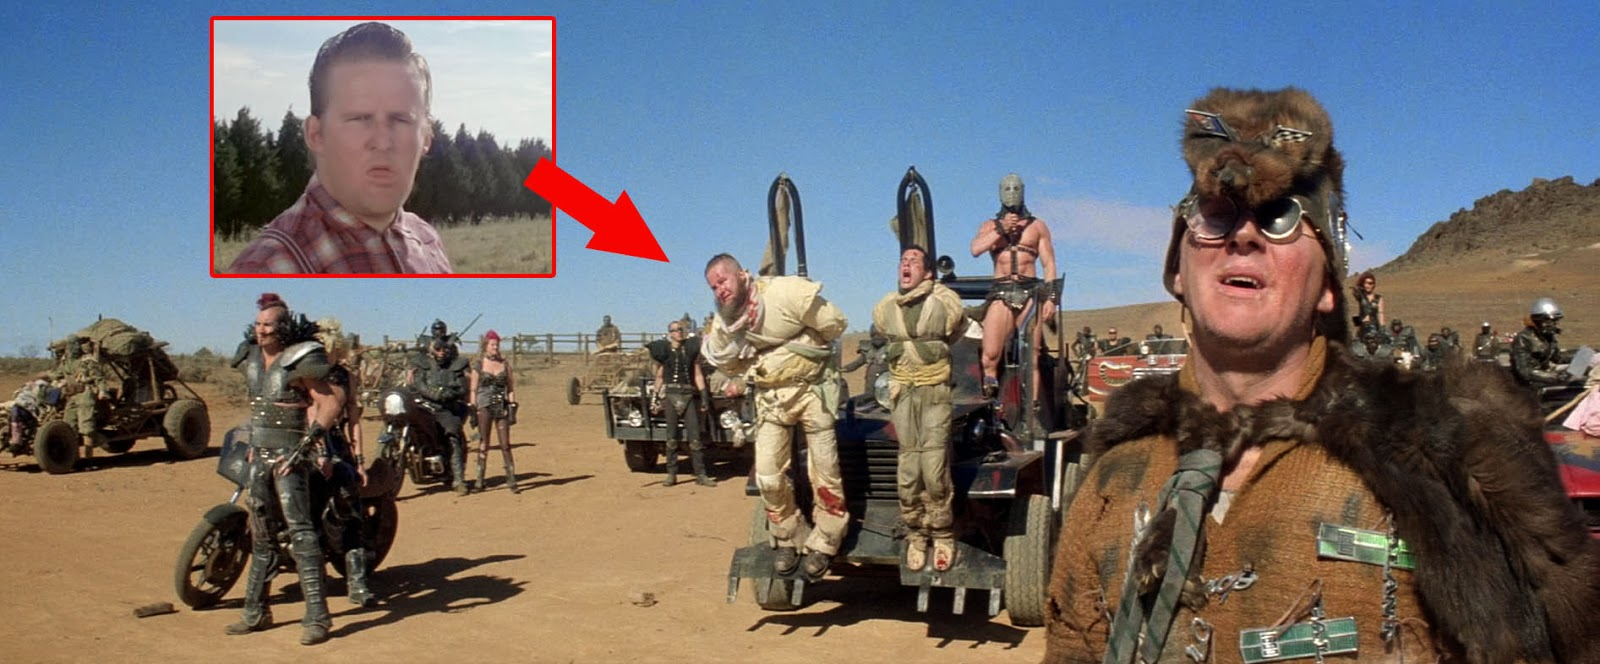 Mad Max The Wasteland George Miller Previews Mad Movies